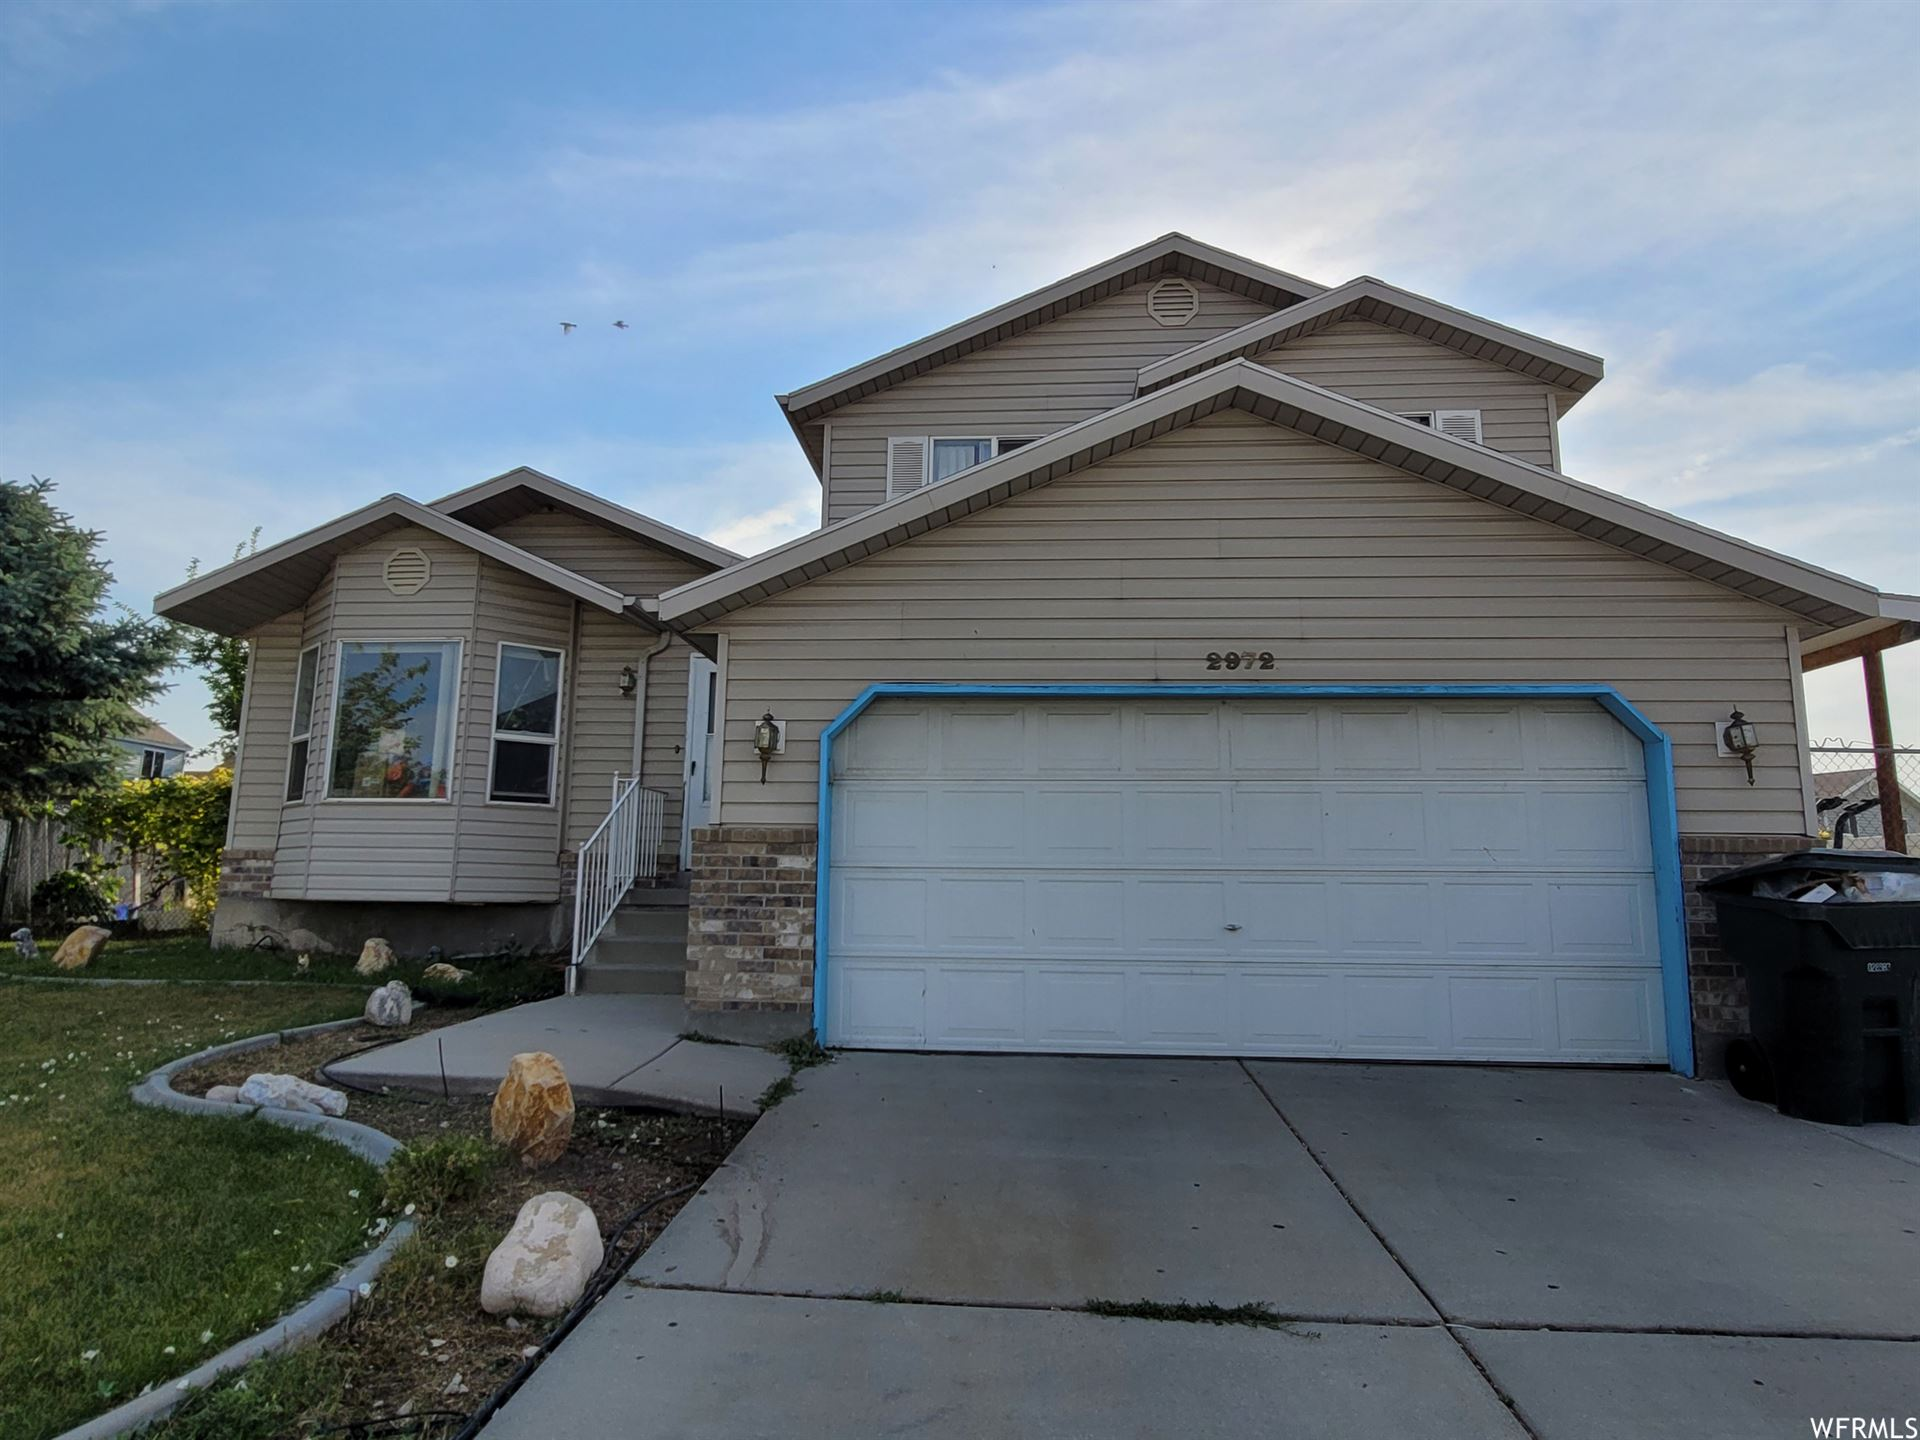 Photo of 2972 S LAKE MEADOW W DR, West Valley City, UT 84120 (MLS # 1749951)